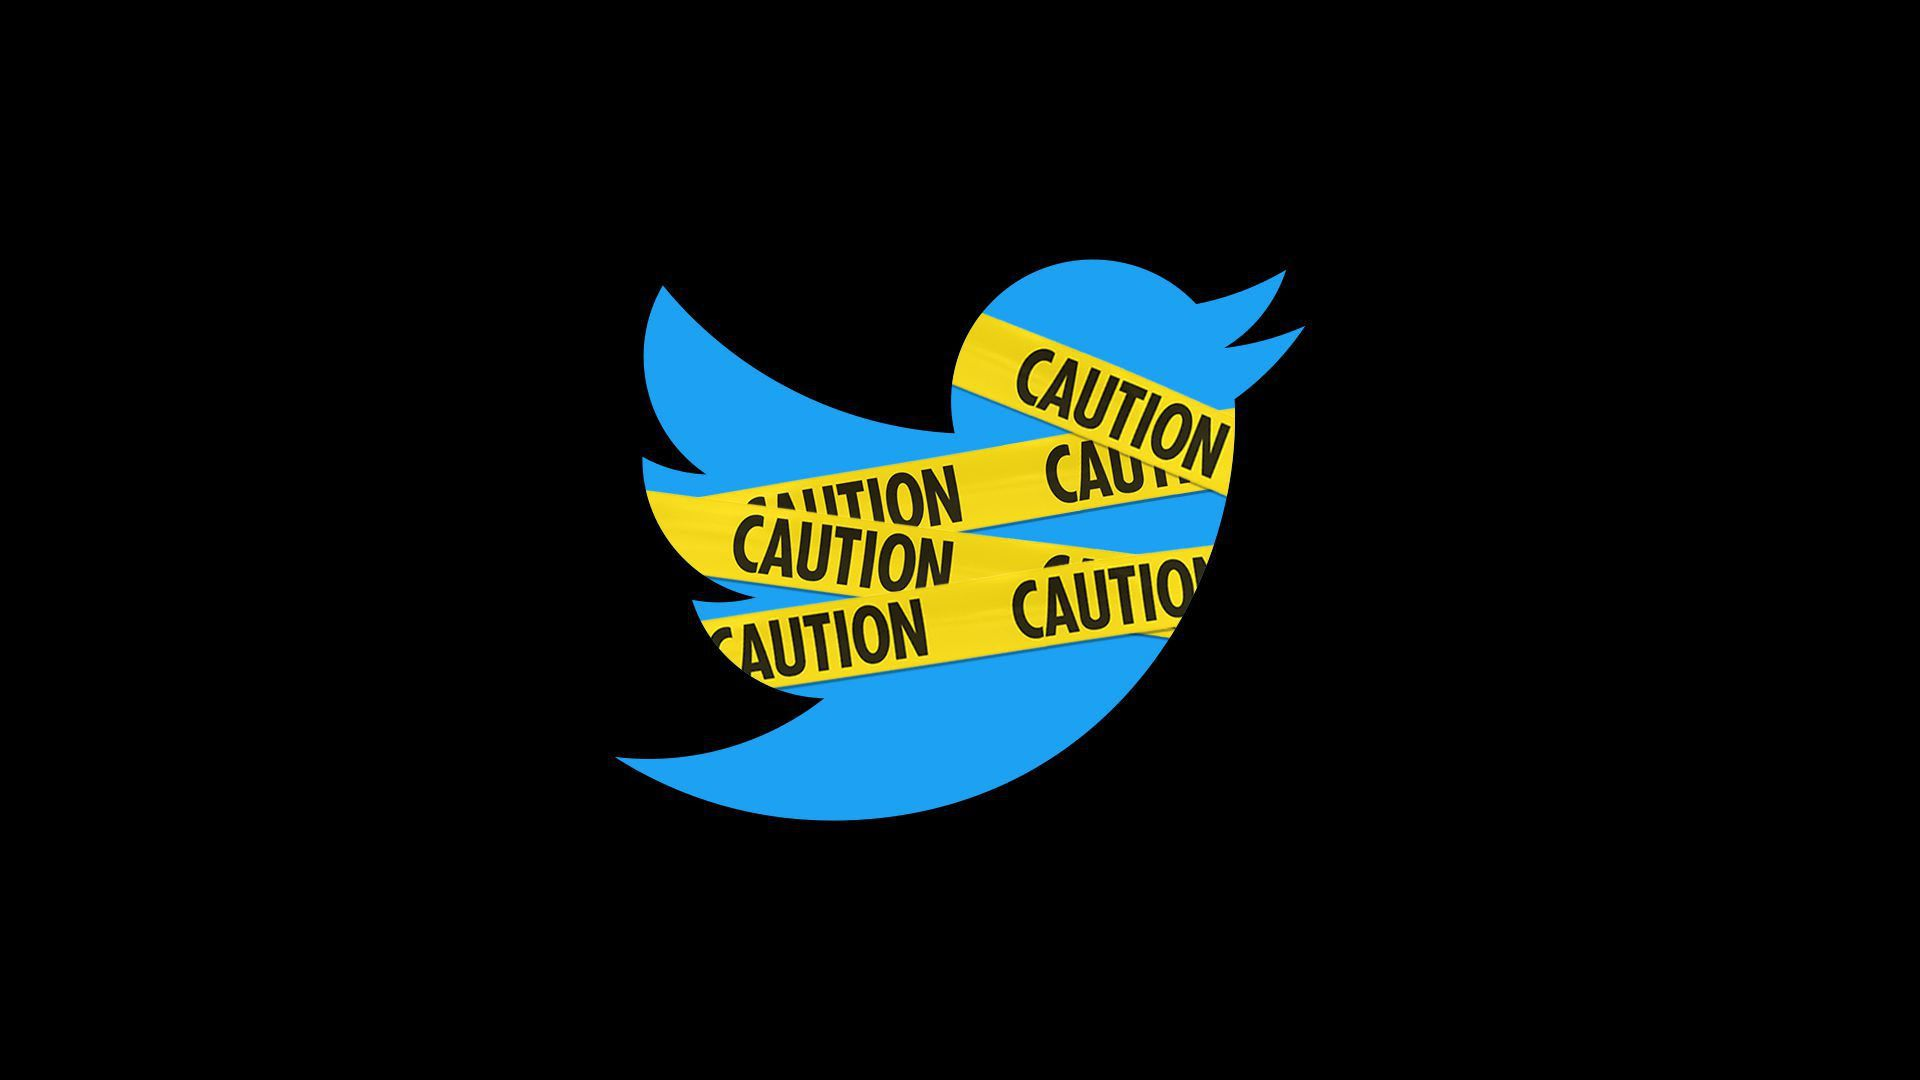 Illustration of the Twitter logo wrapped in caution tape